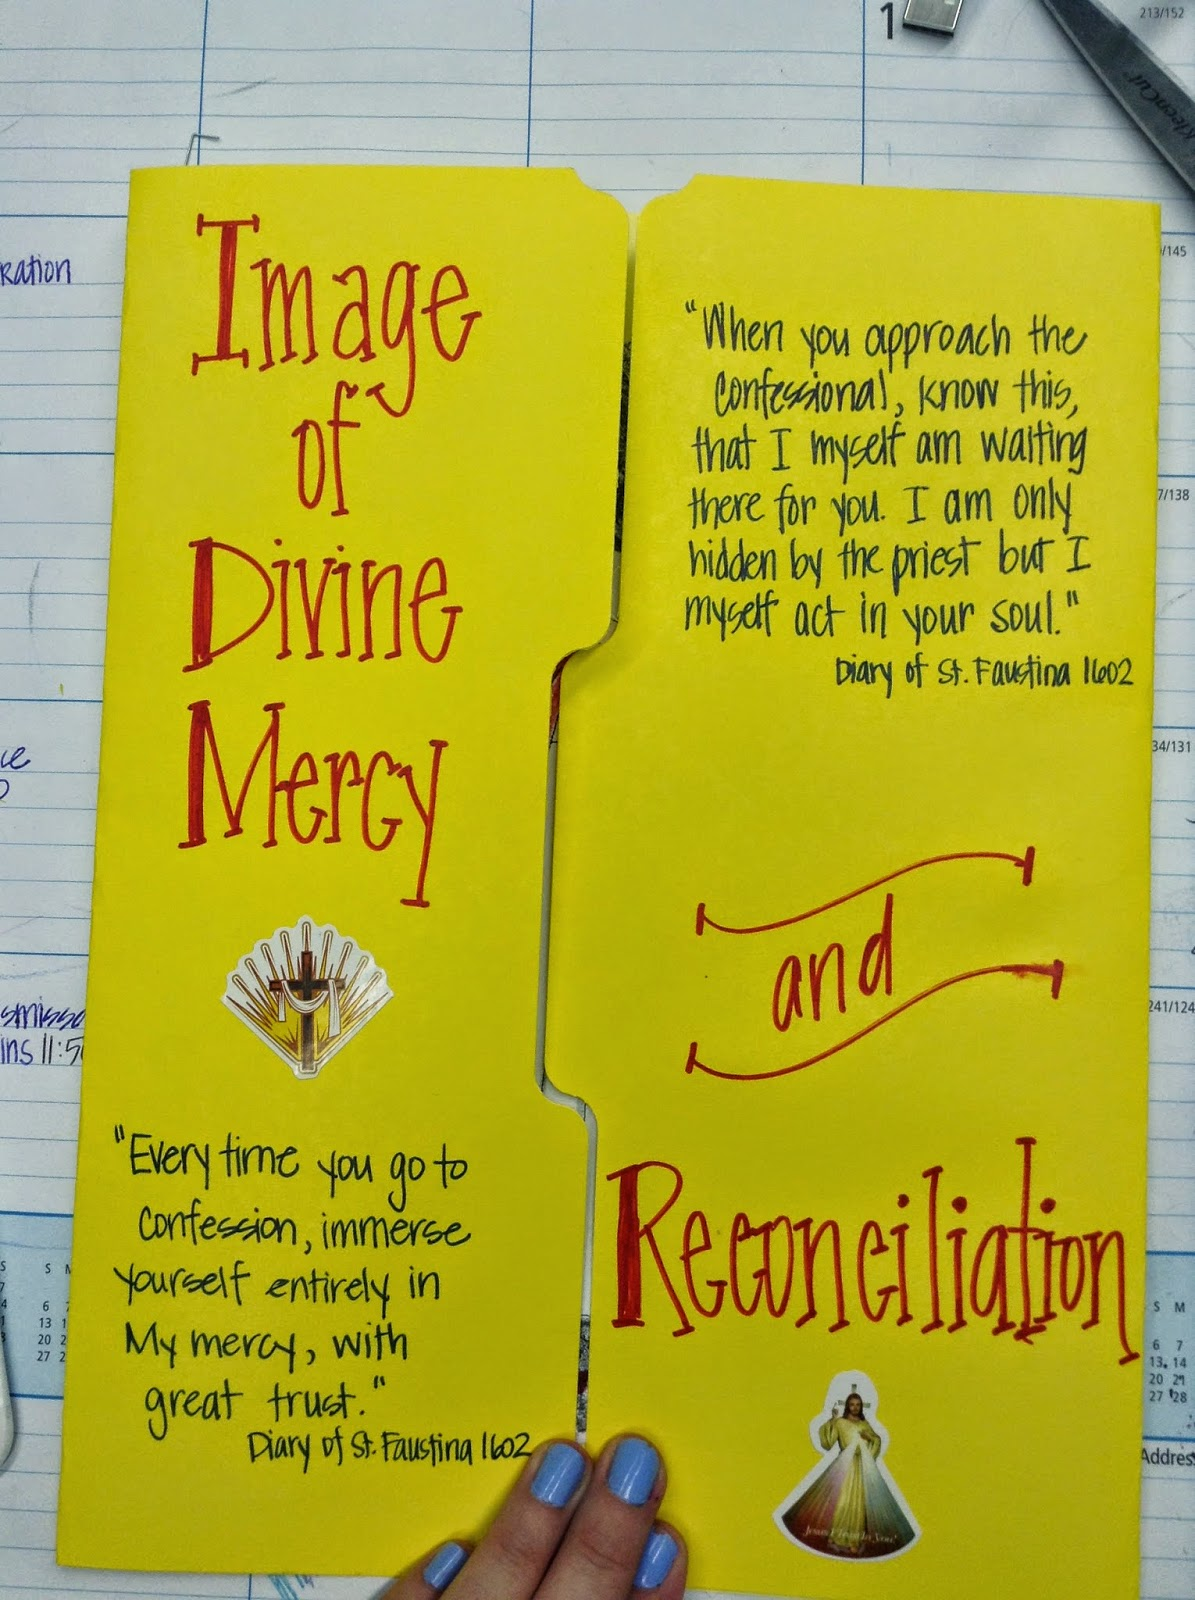 http://looktohimandberadiant.blogspot.com/2013/08/divine-mercy-and-reconciliation-lapbook.html